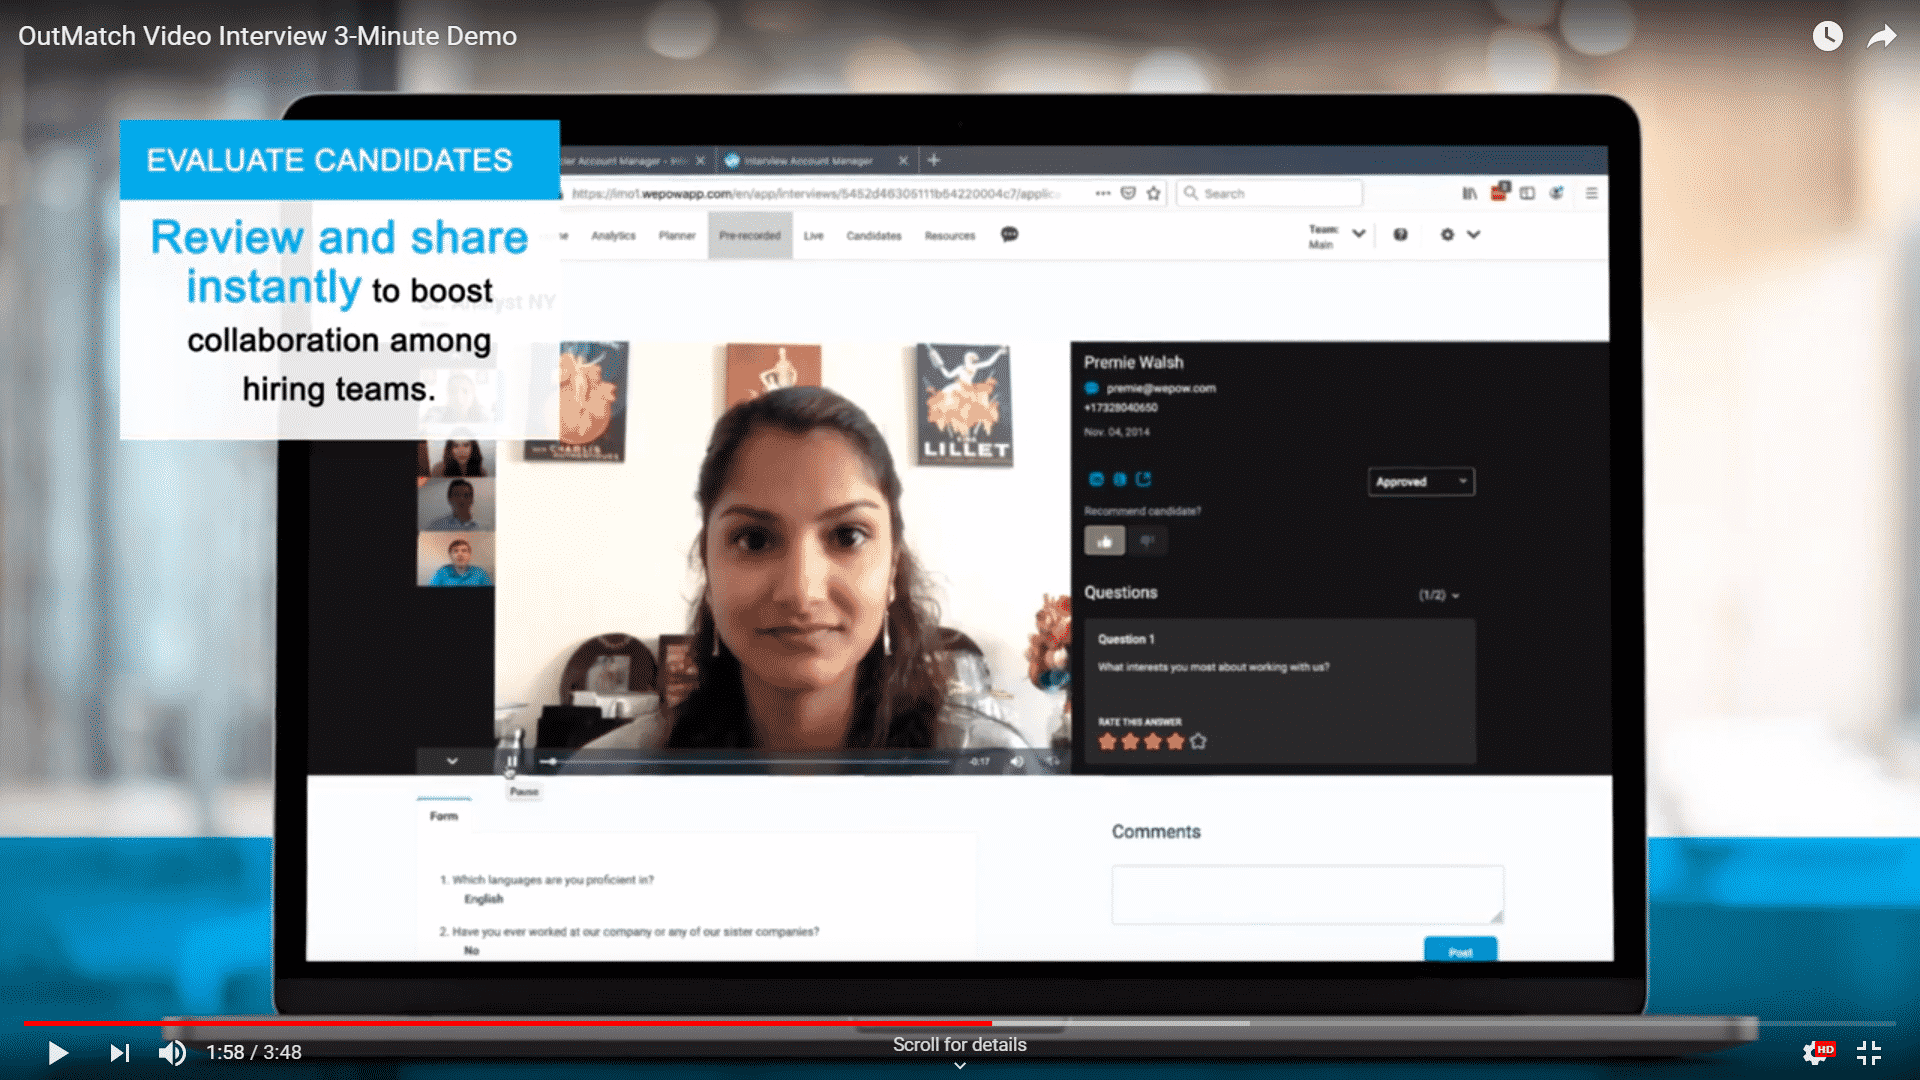 OutMatch Video Interview 3-Minute Demo